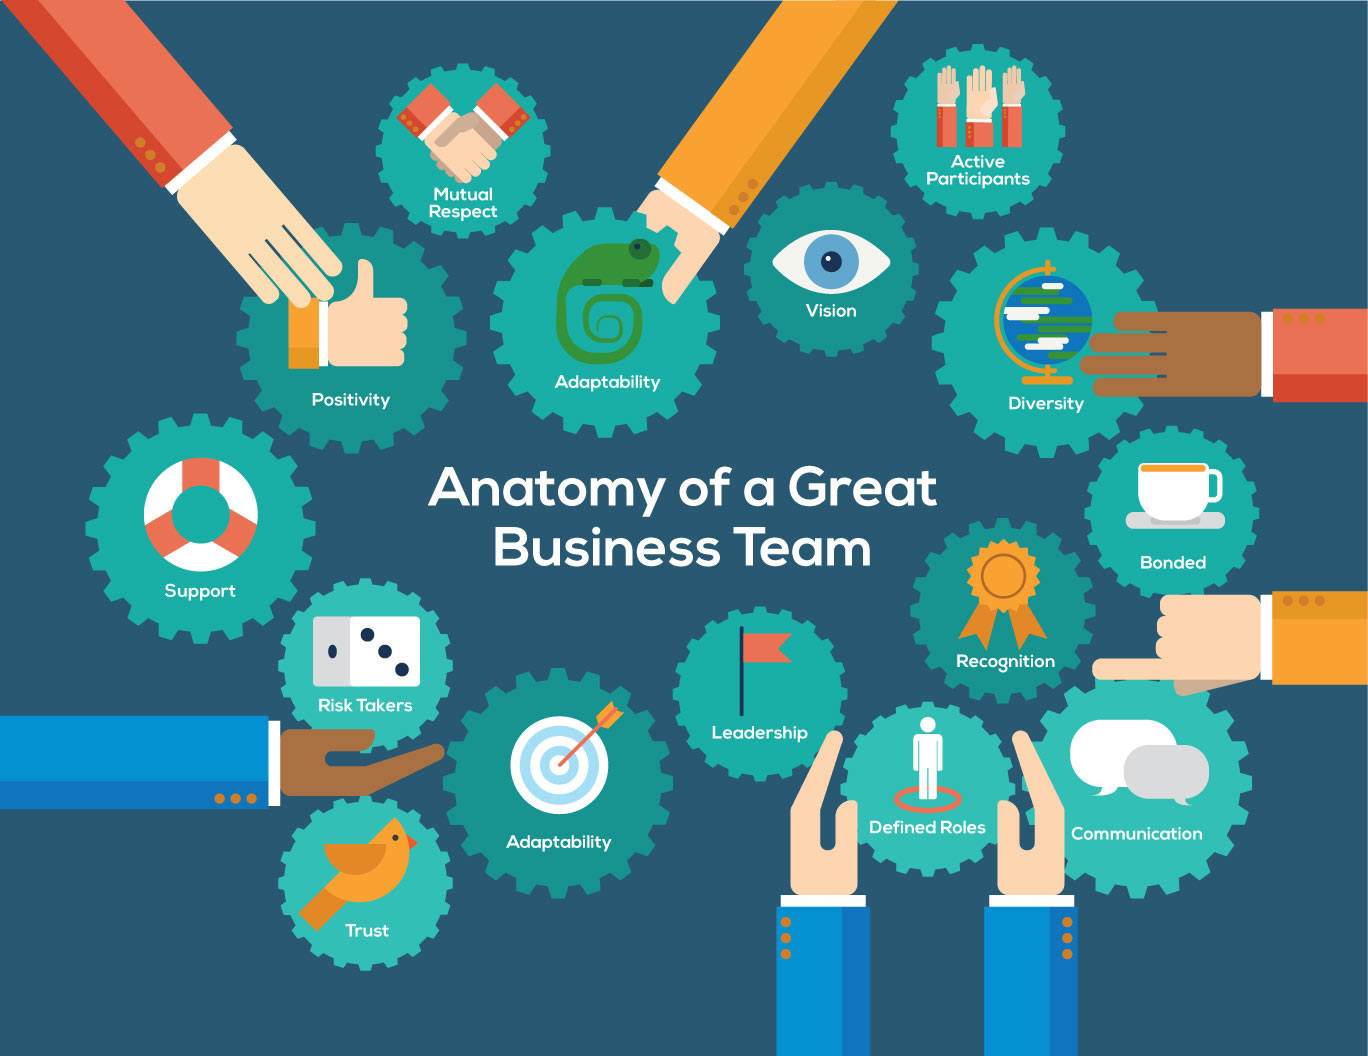 anatomy of a great business team infographic anatomy of a great business team small the question of what makes